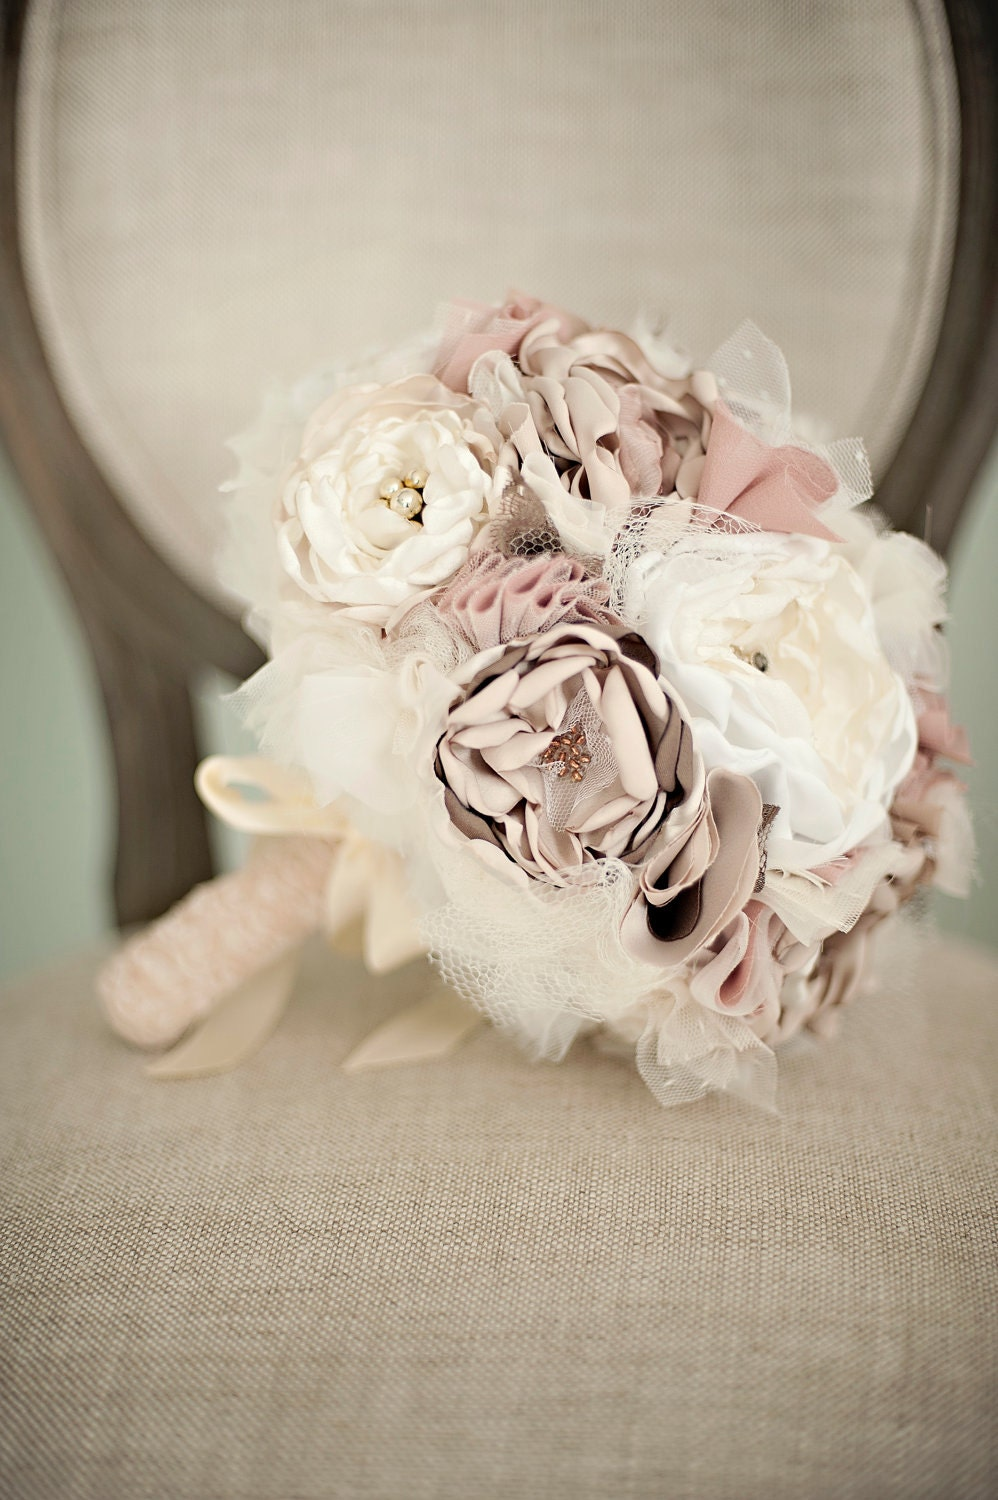 Fabric Flower Custom Wedding Bouquet.  Champagne, Dusty Rose Ivory with pearls, lace, vintage jewelry, rhinestones